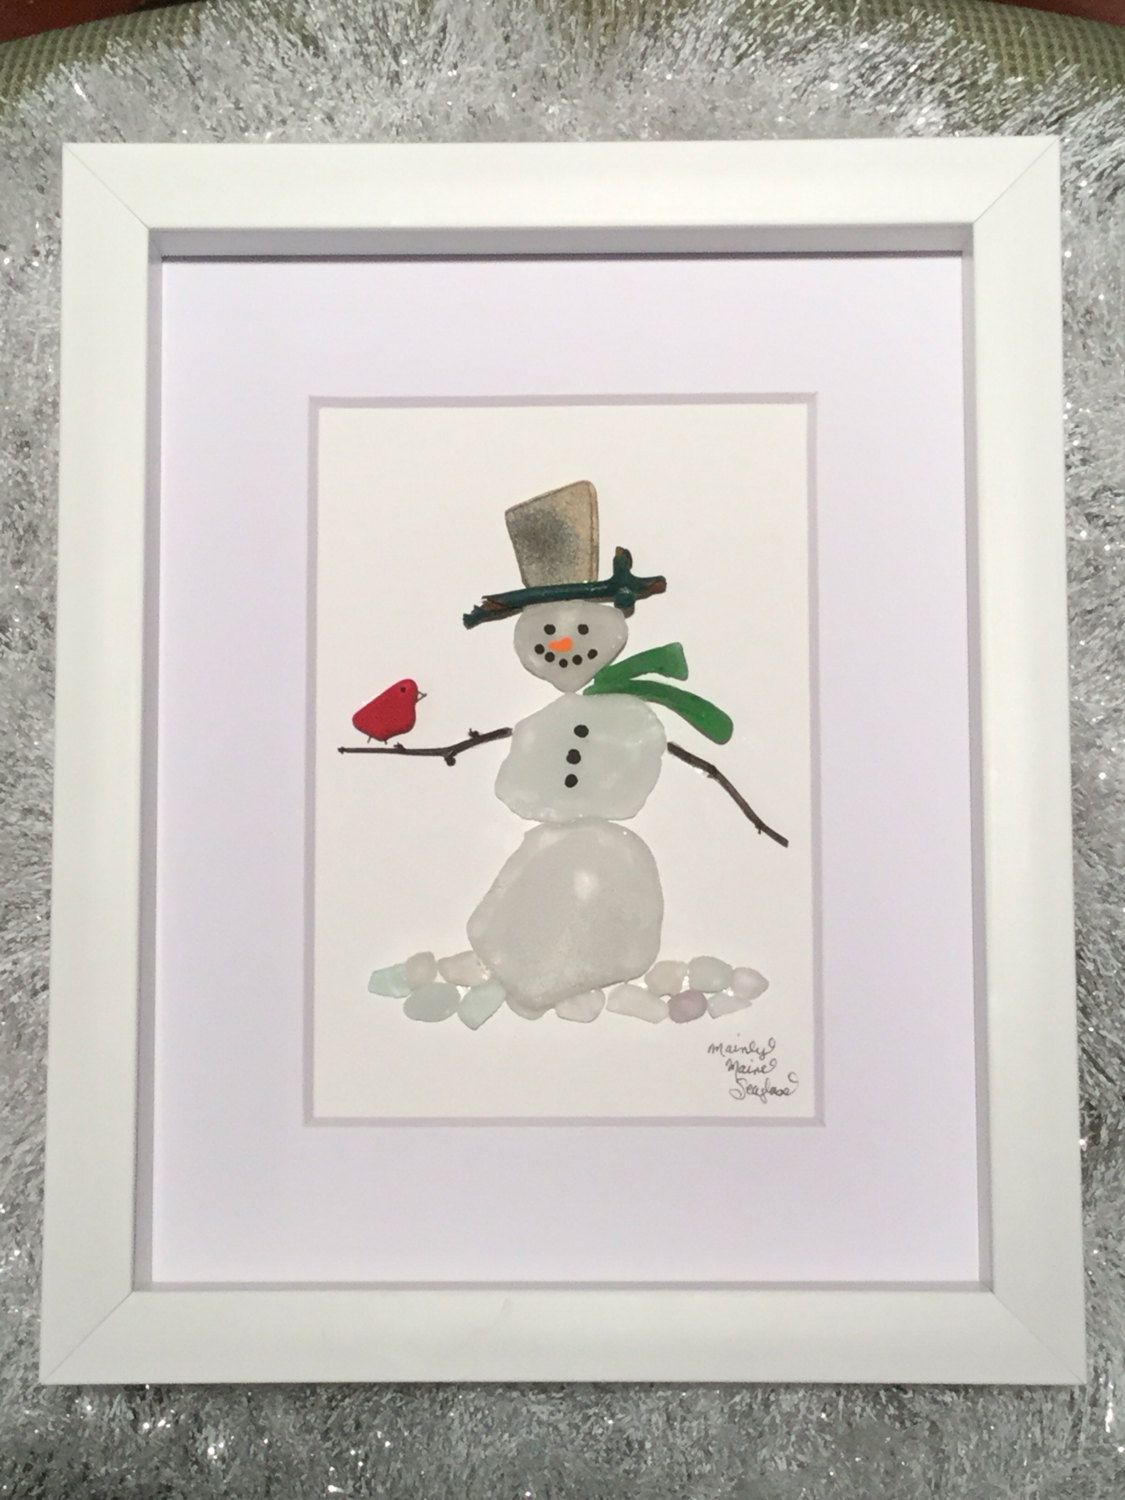 Snowman With Cardinal Unique Gift Sea Glass Art